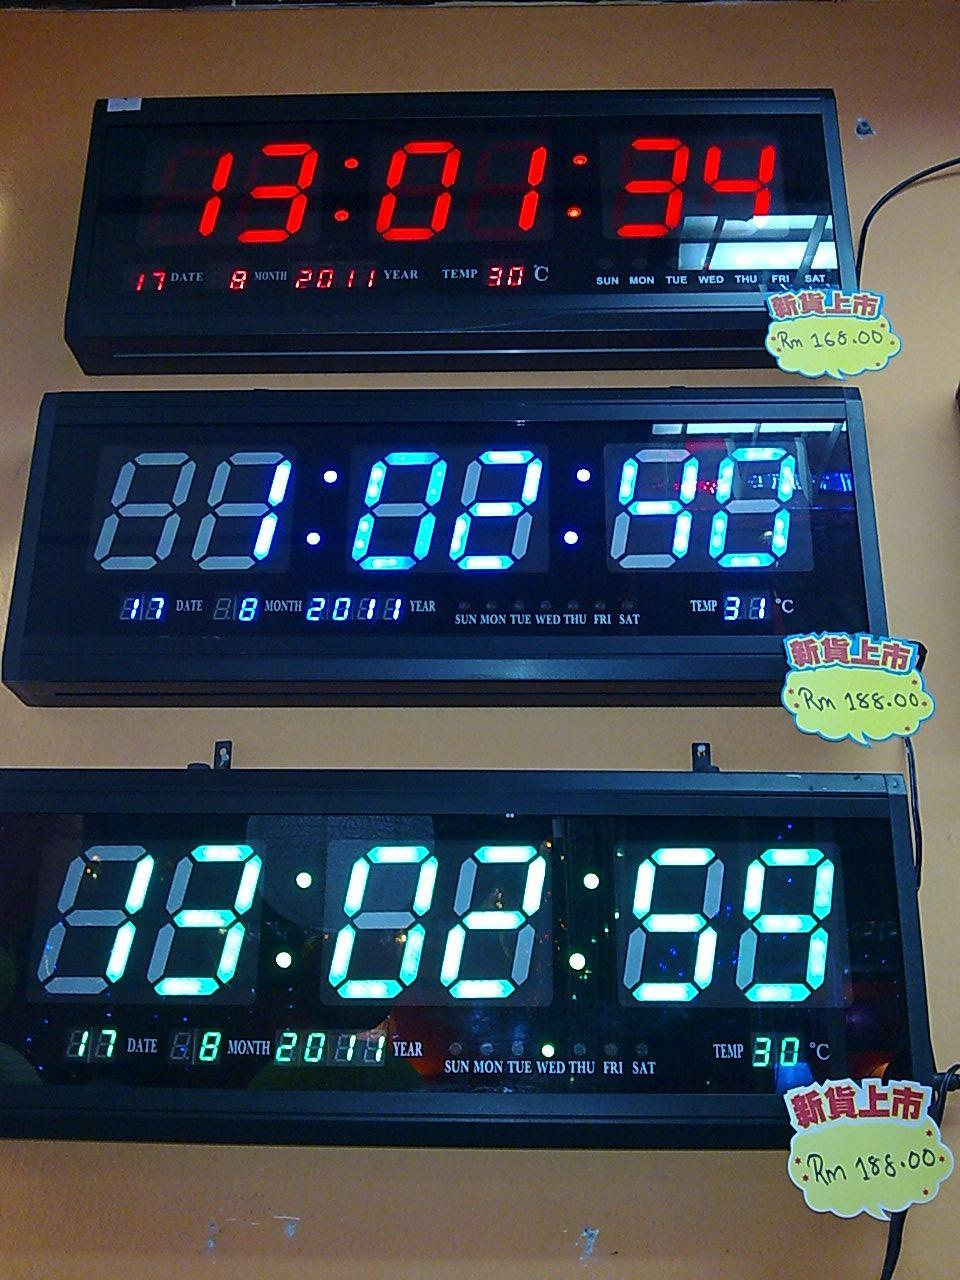 Digital led wall clockauto calenda end 12272017 515 pm digital led wall clockauto calendarthermometer gtgtled amipublicfo Images